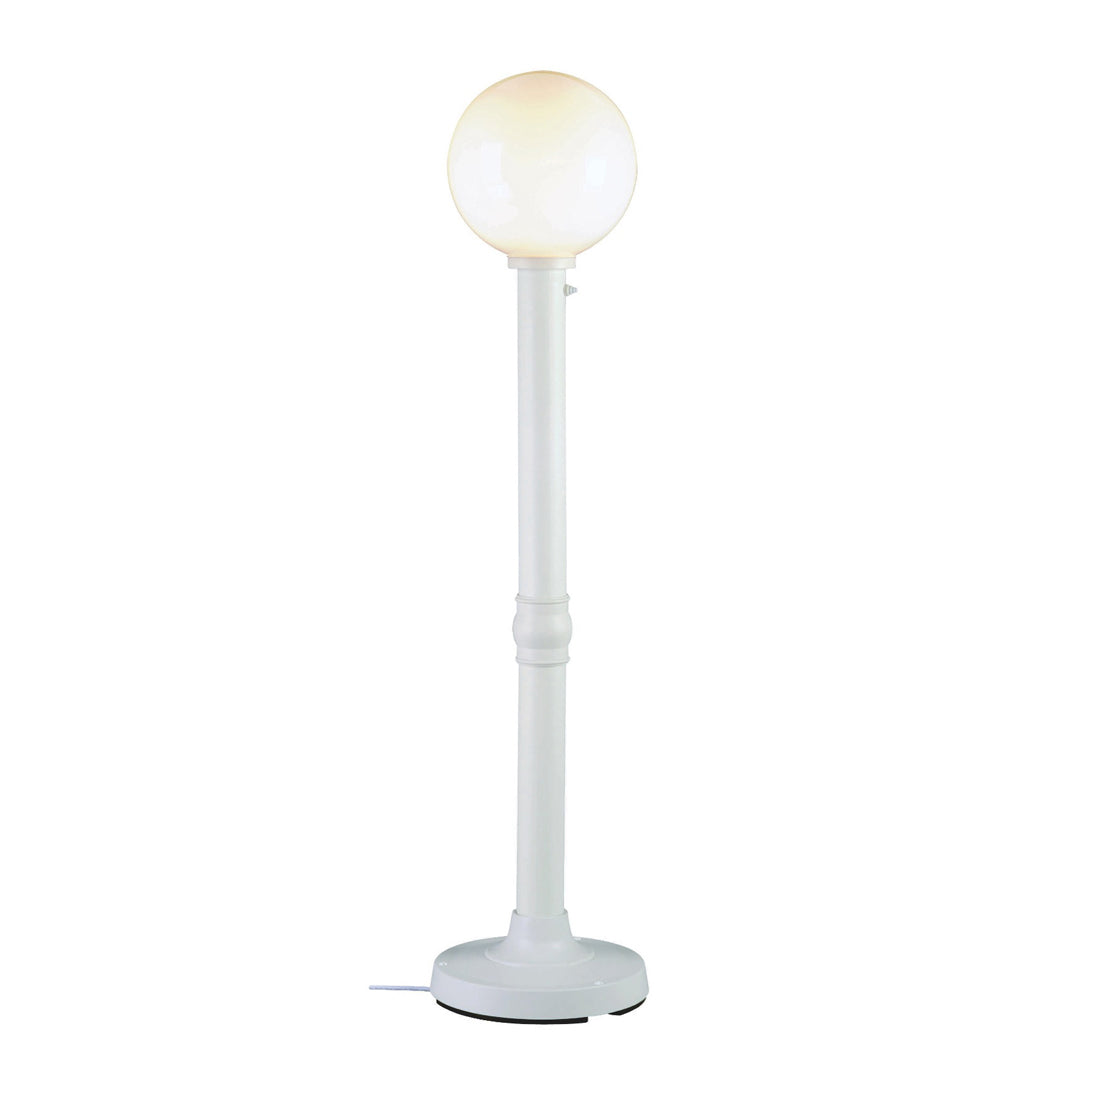 "Moonlite 64"" Floor Lamp 08711 with 3"" white tube body and white globe"